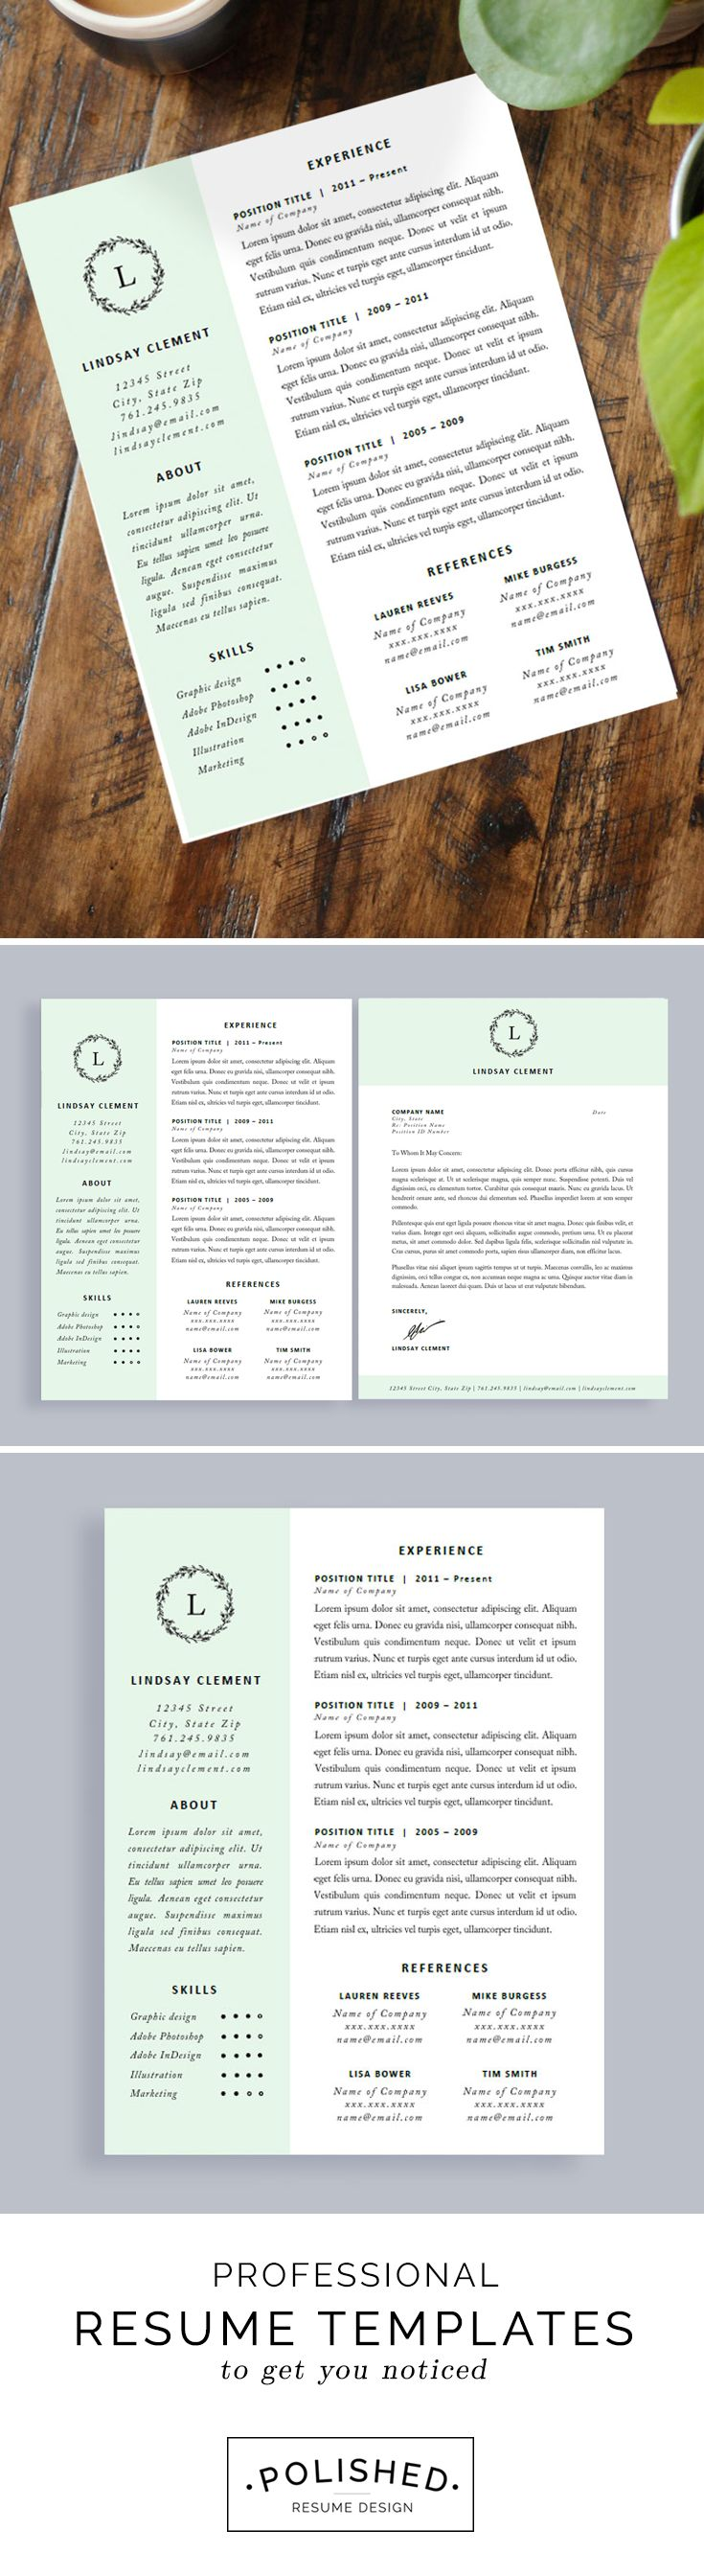 bartender job description resume%0A Professional Resume Template and Cover Letter for Word and Pages   One Page    Instant Download   Creative Resume   CV